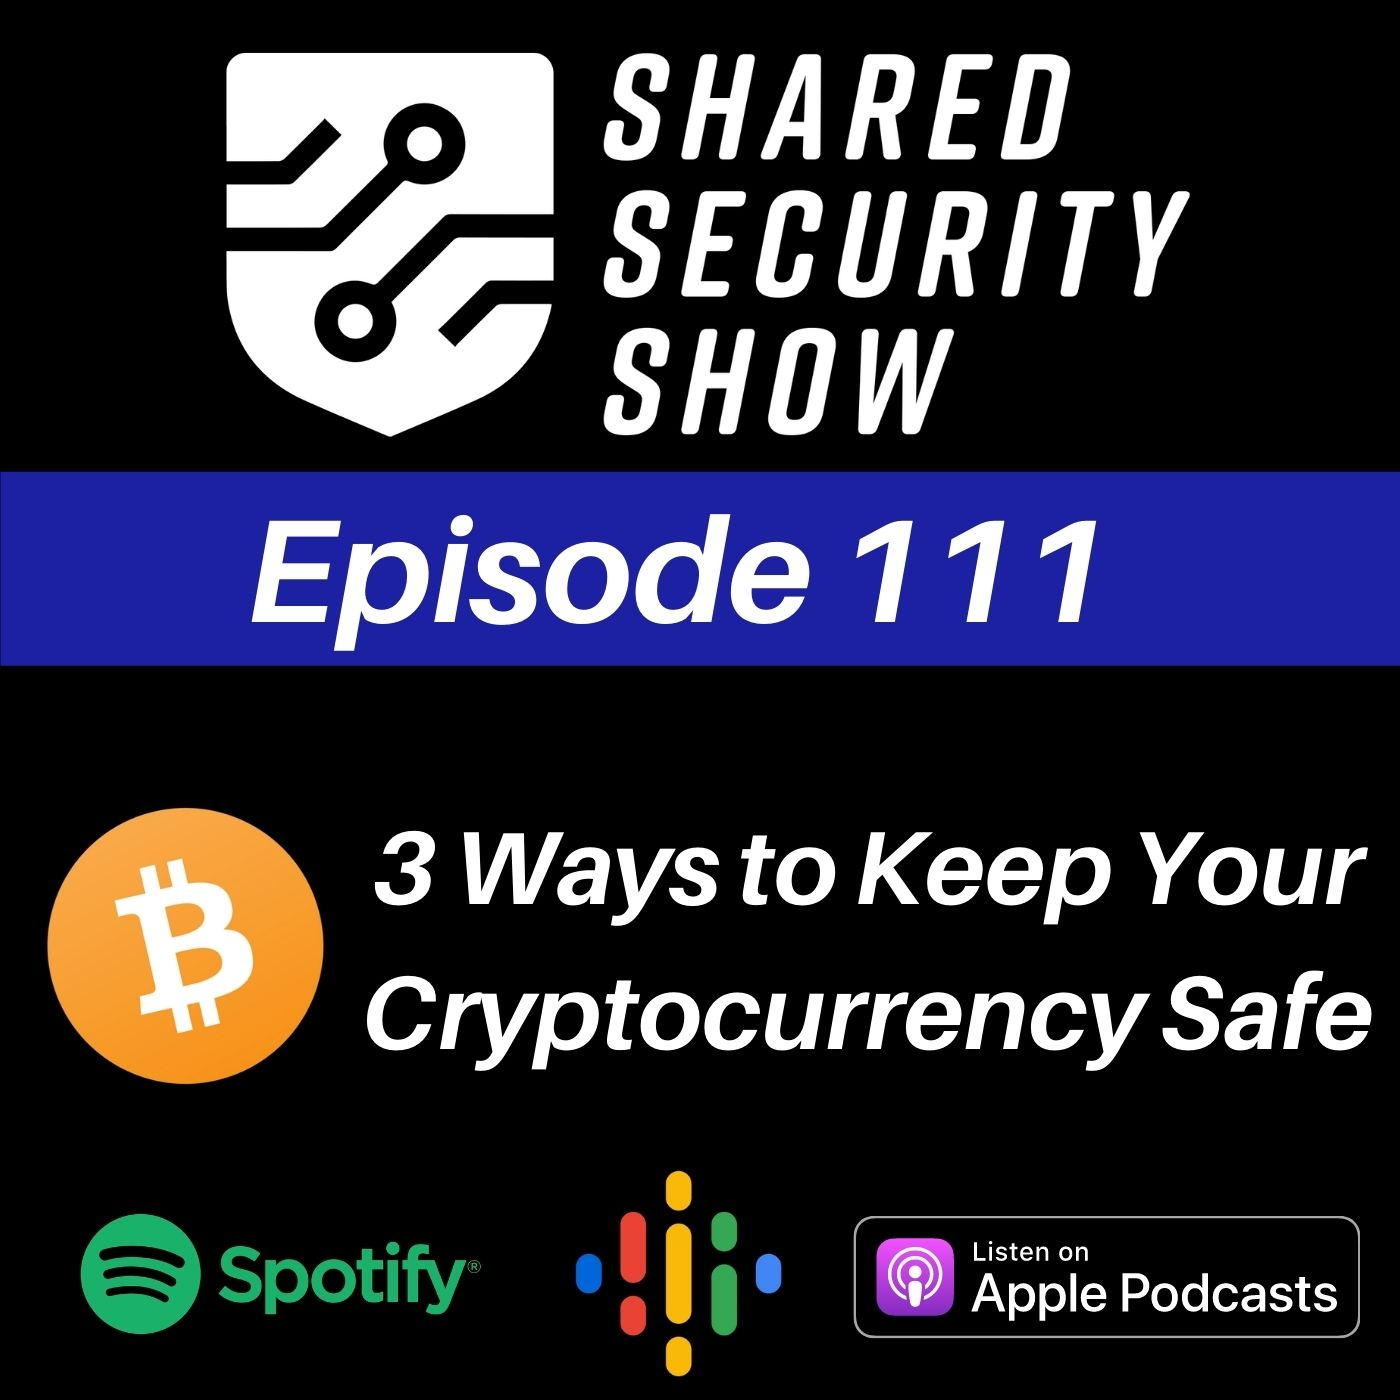 3 Ways to Keep Your Cryptocurrency Safe